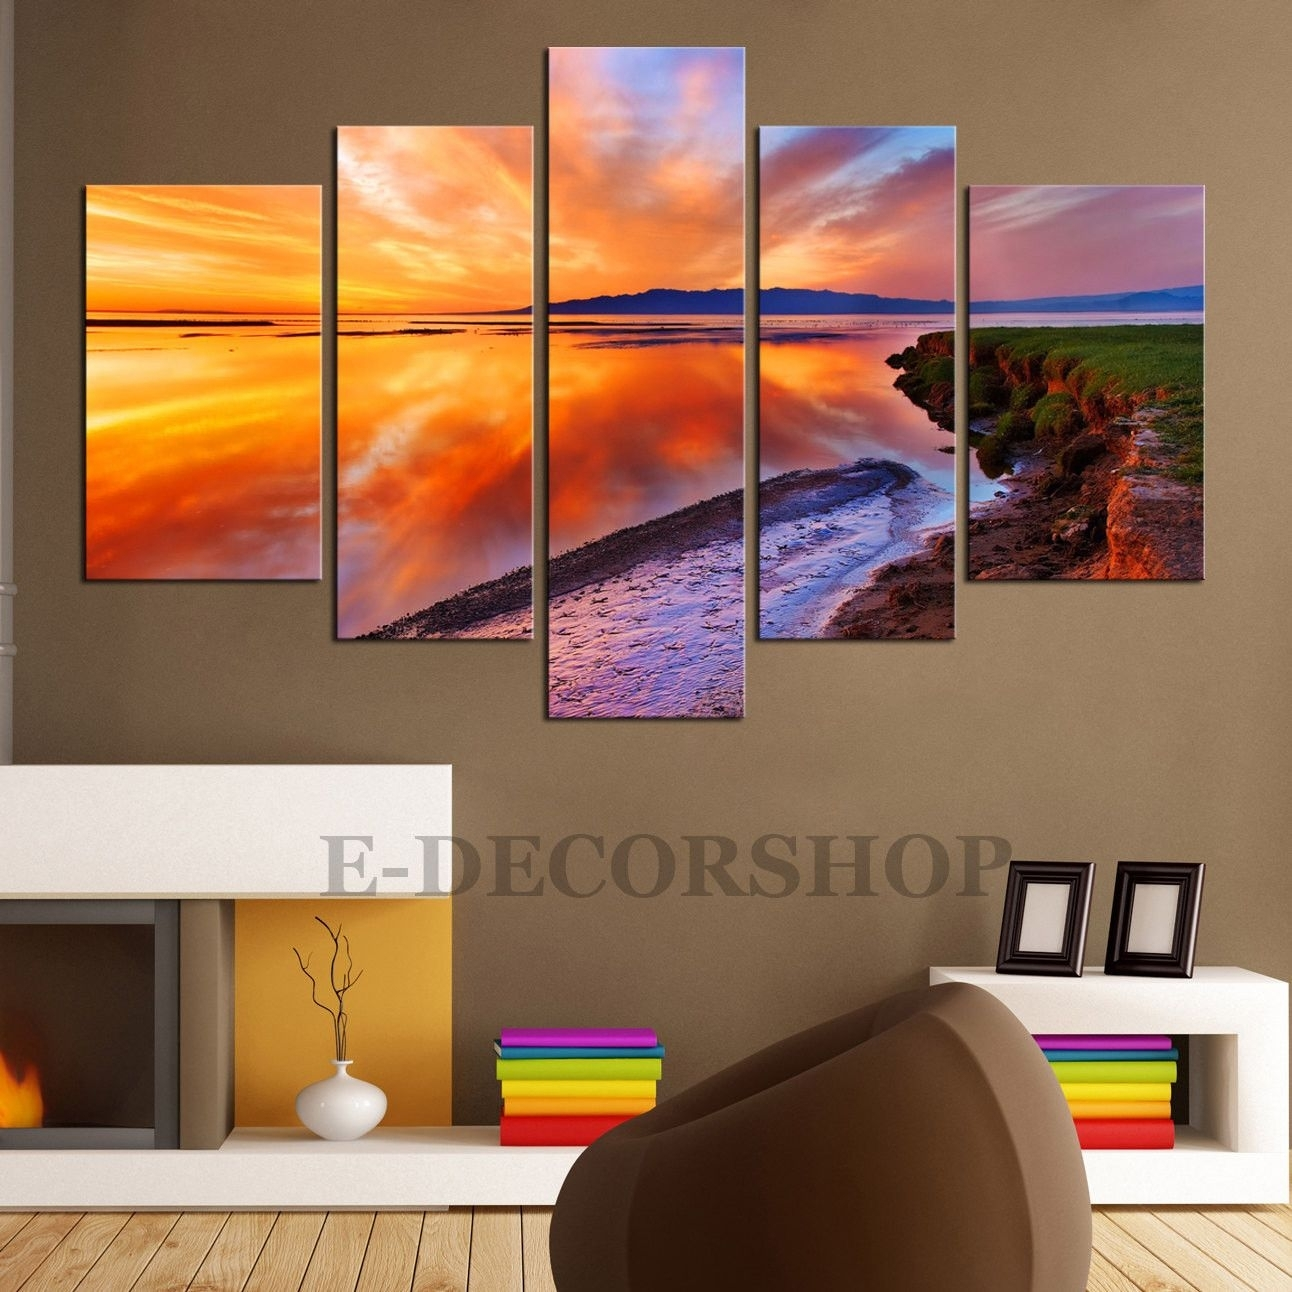 Large Canvas Wall Art – Sunset 5 Piece Canvas Art Print For Home Inside Most Recent Big W Canvas Wall Art (View 8 of 15)